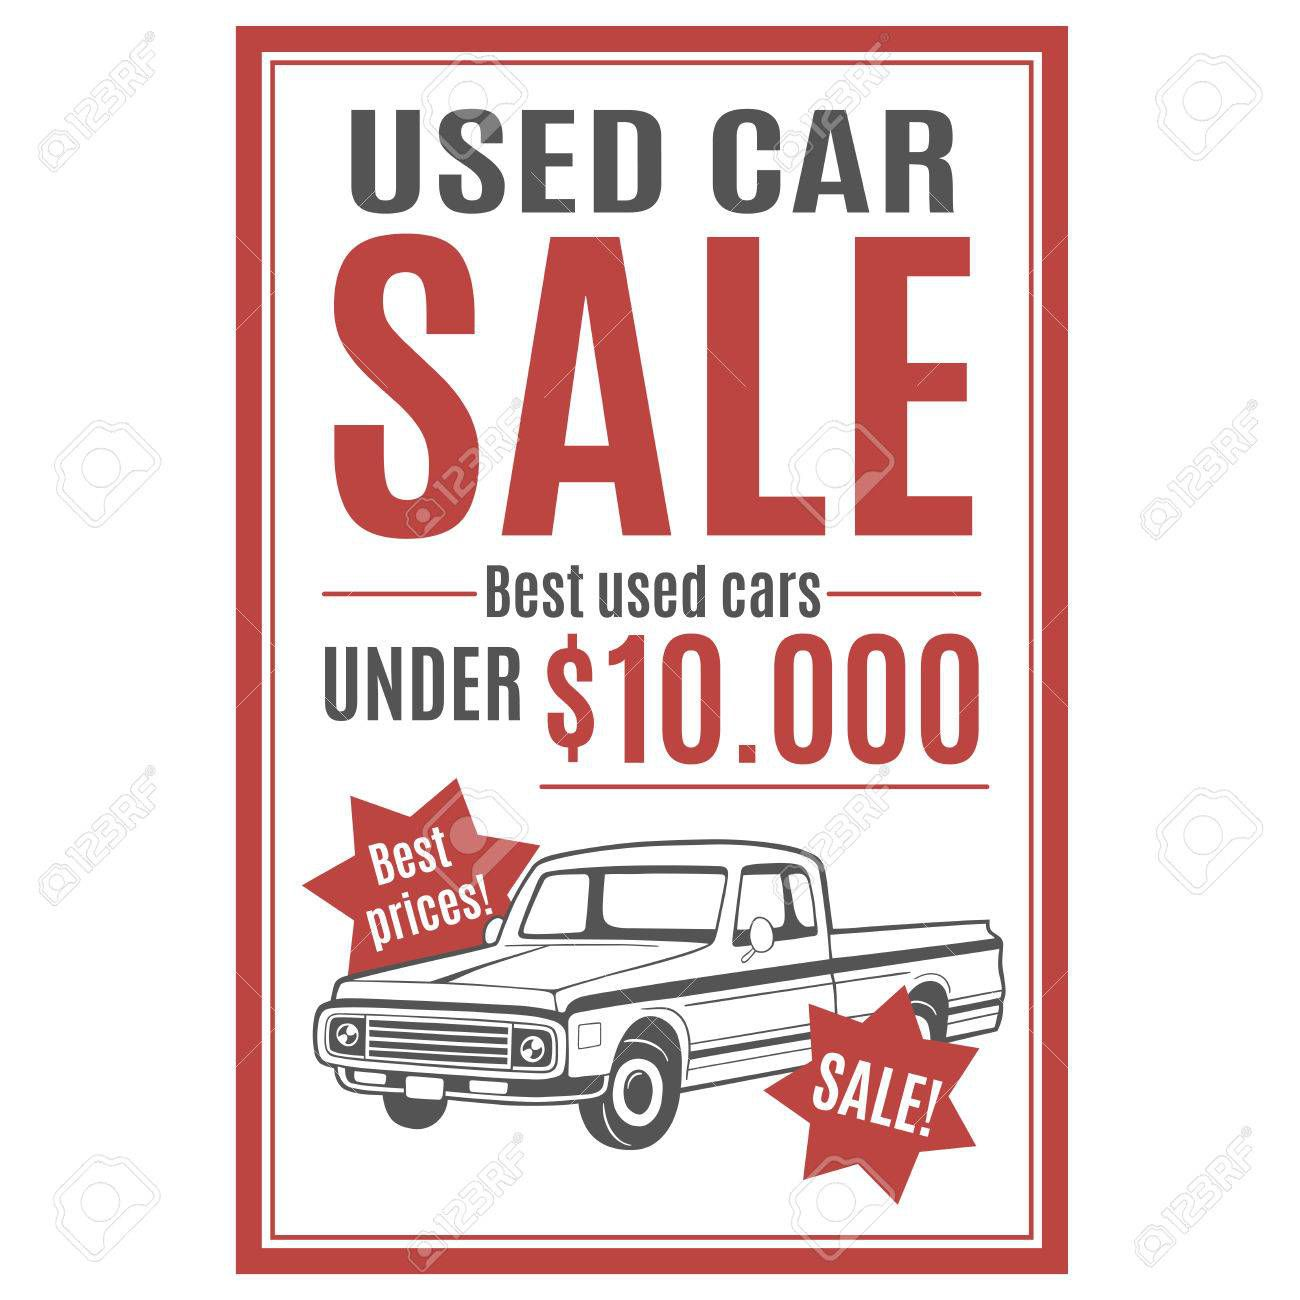 002 Unusual Car For Sale Template Design  Sign Word Bill Of UkFull